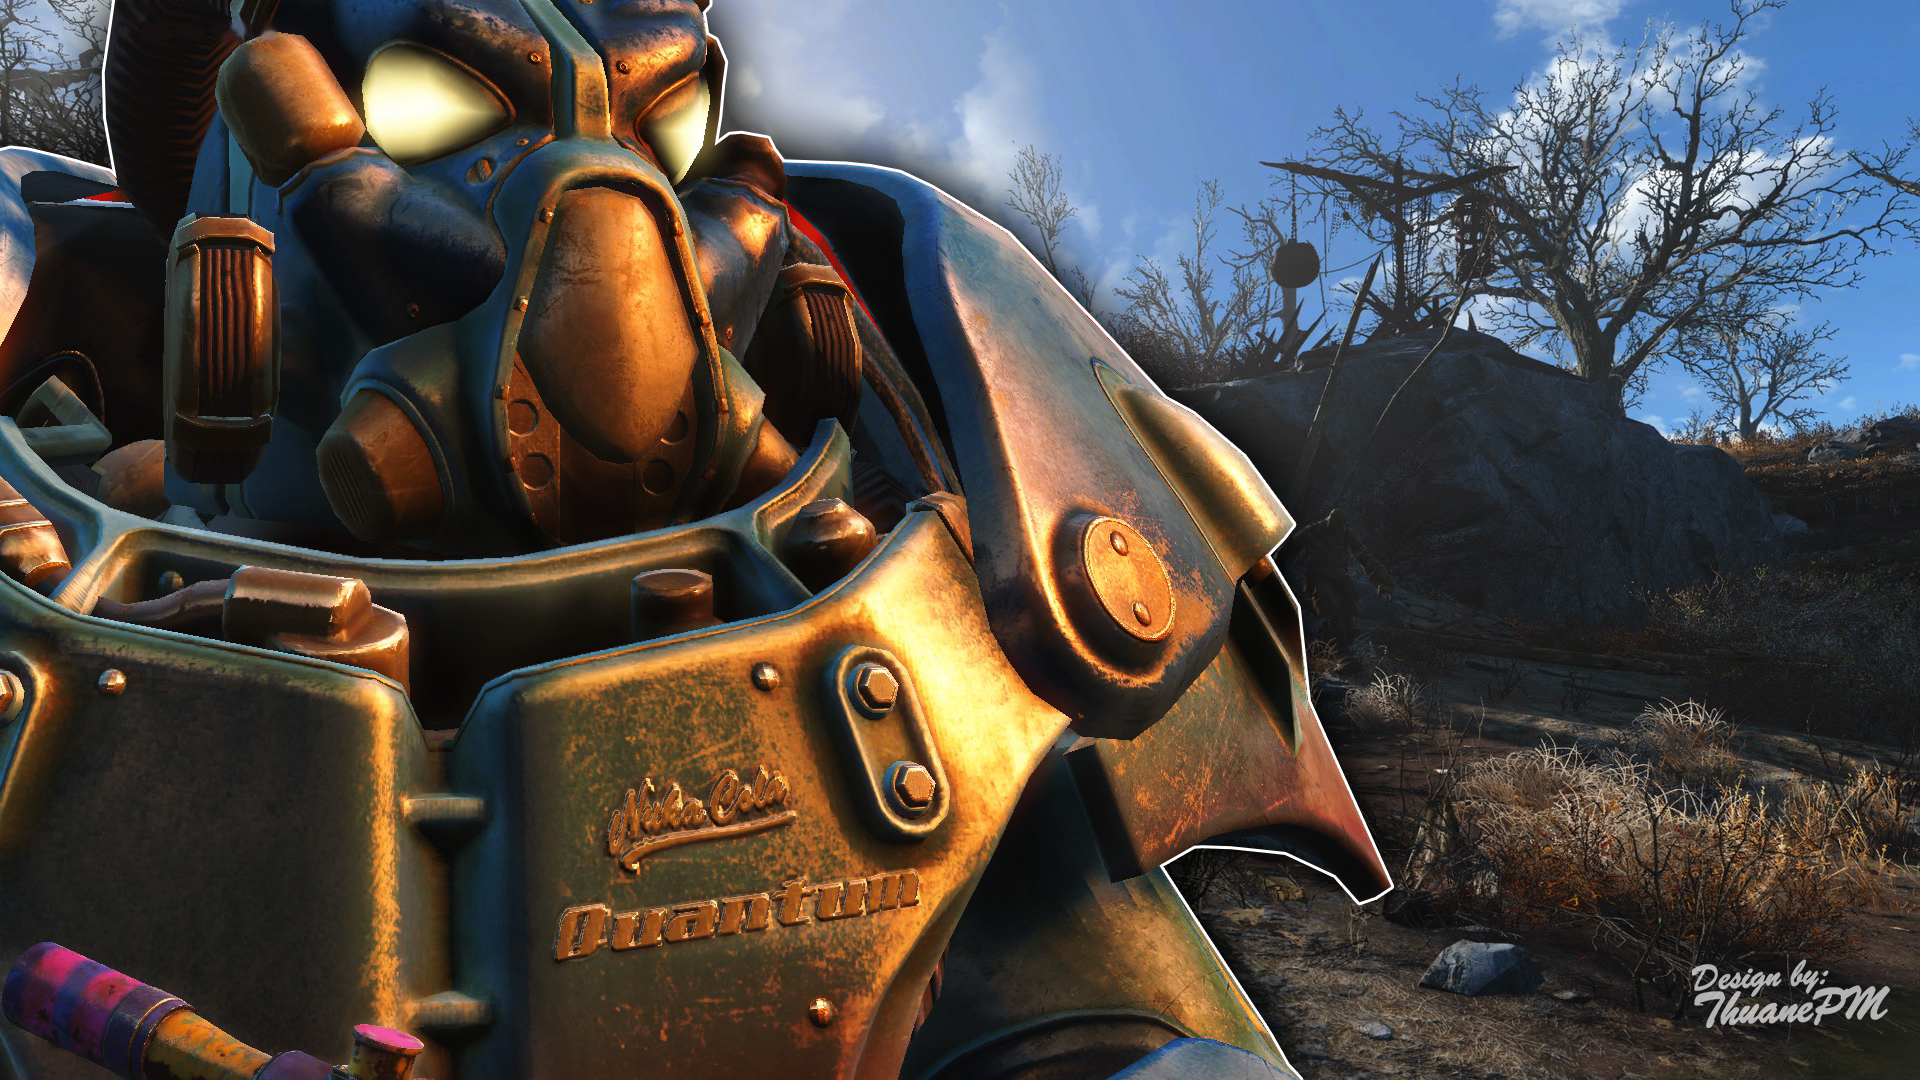 Fallout 4 Wallpaper Nuka Cola Quantum Powerarmor By Thuanepm On